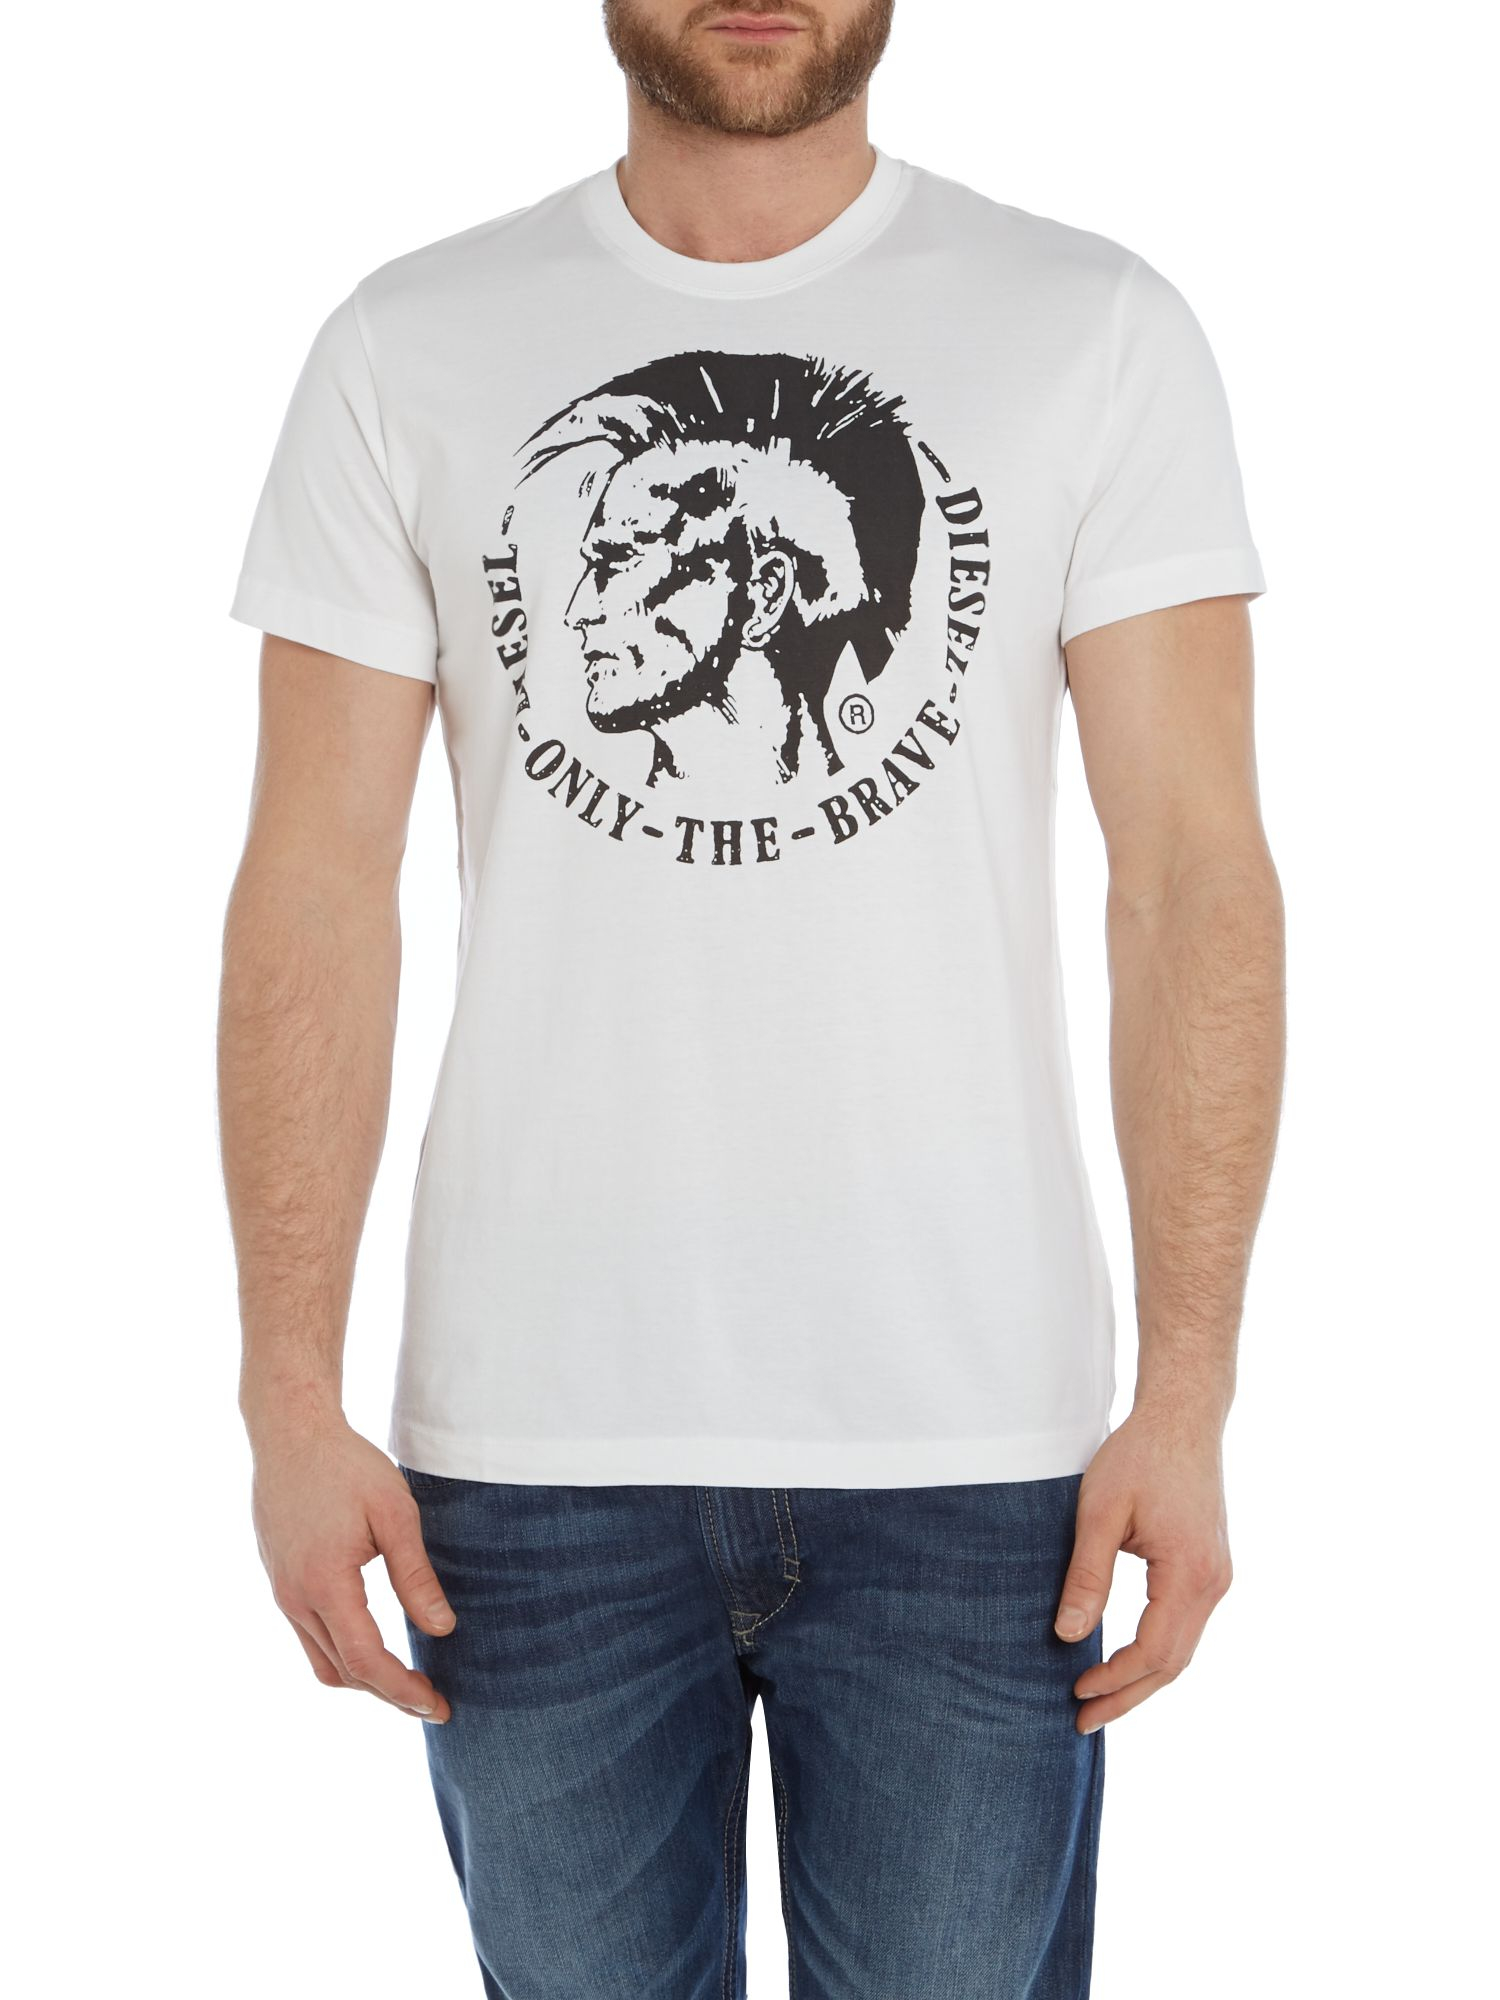 lyst diesel t ulysse mohican graphic t shirt in white for men. Black Bedroom Furniture Sets. Home Design Ideas